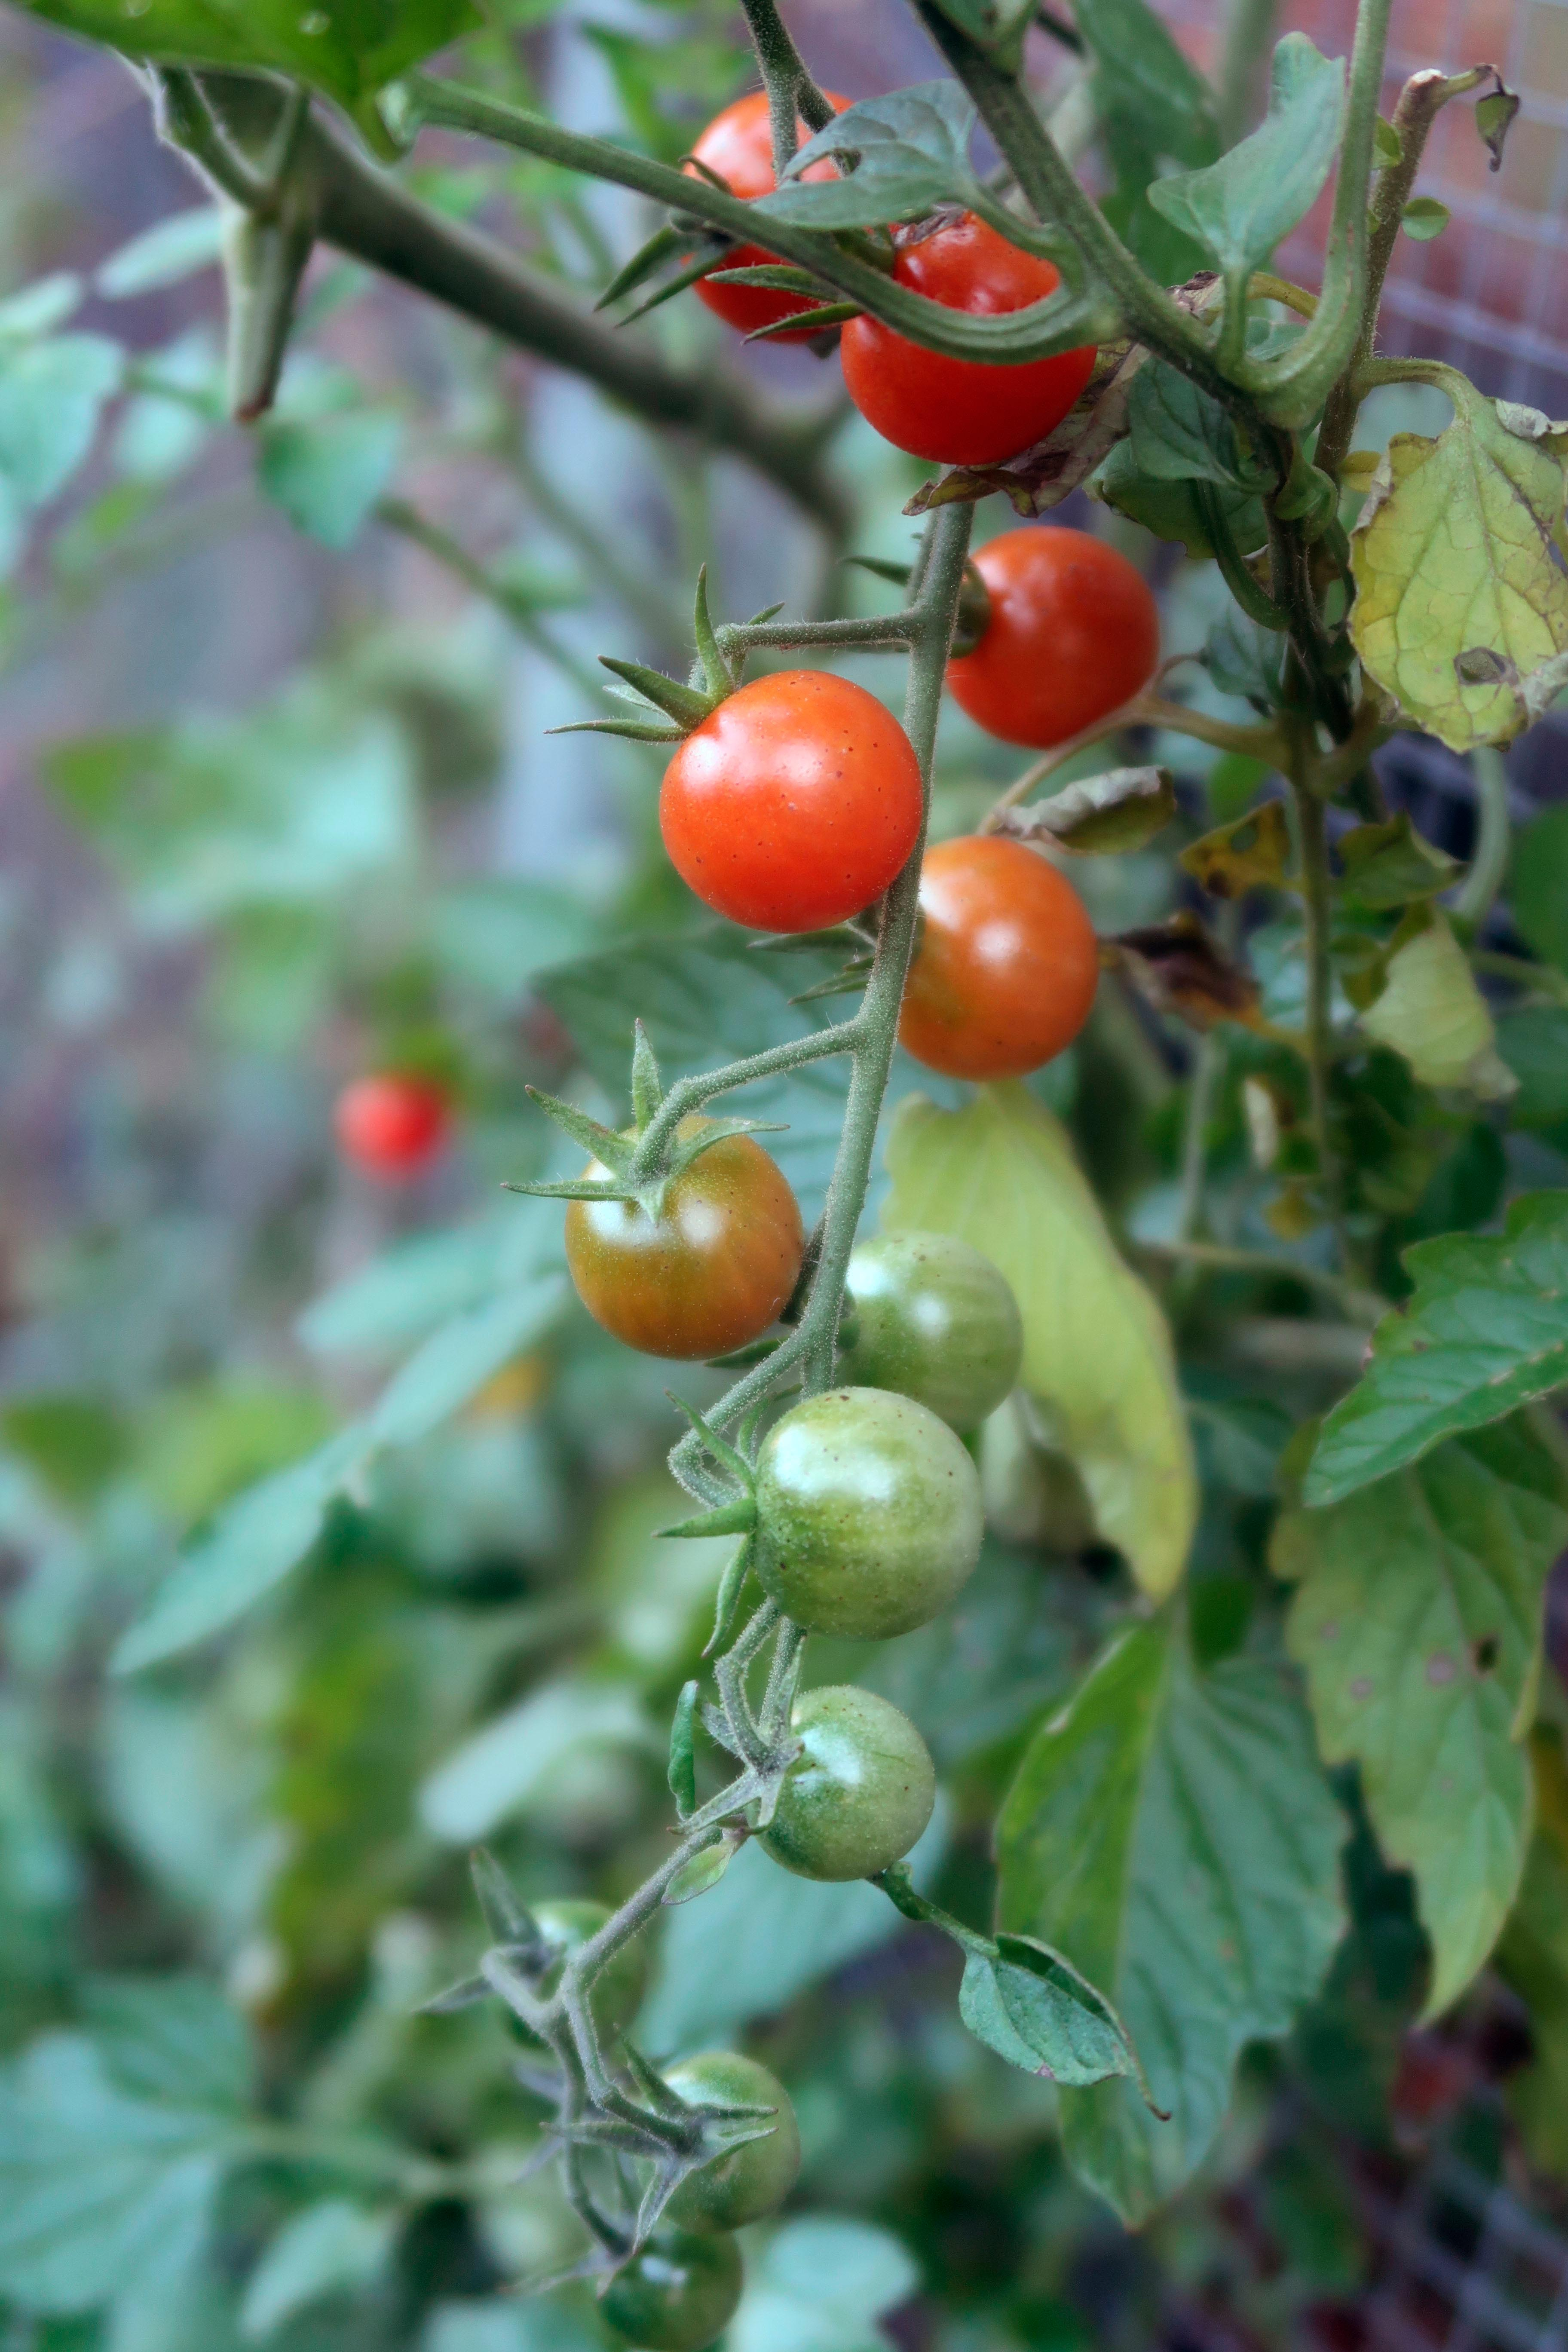 This Friday, Oct. 27, 2017 photo provided by Richard Primack shows tomatoes growing in his home garden in Boston. Primack says there are also lettuce, beans and many other vegetables growing in the garden, and he is still eating them for dinner. (Richard Primack via AP)